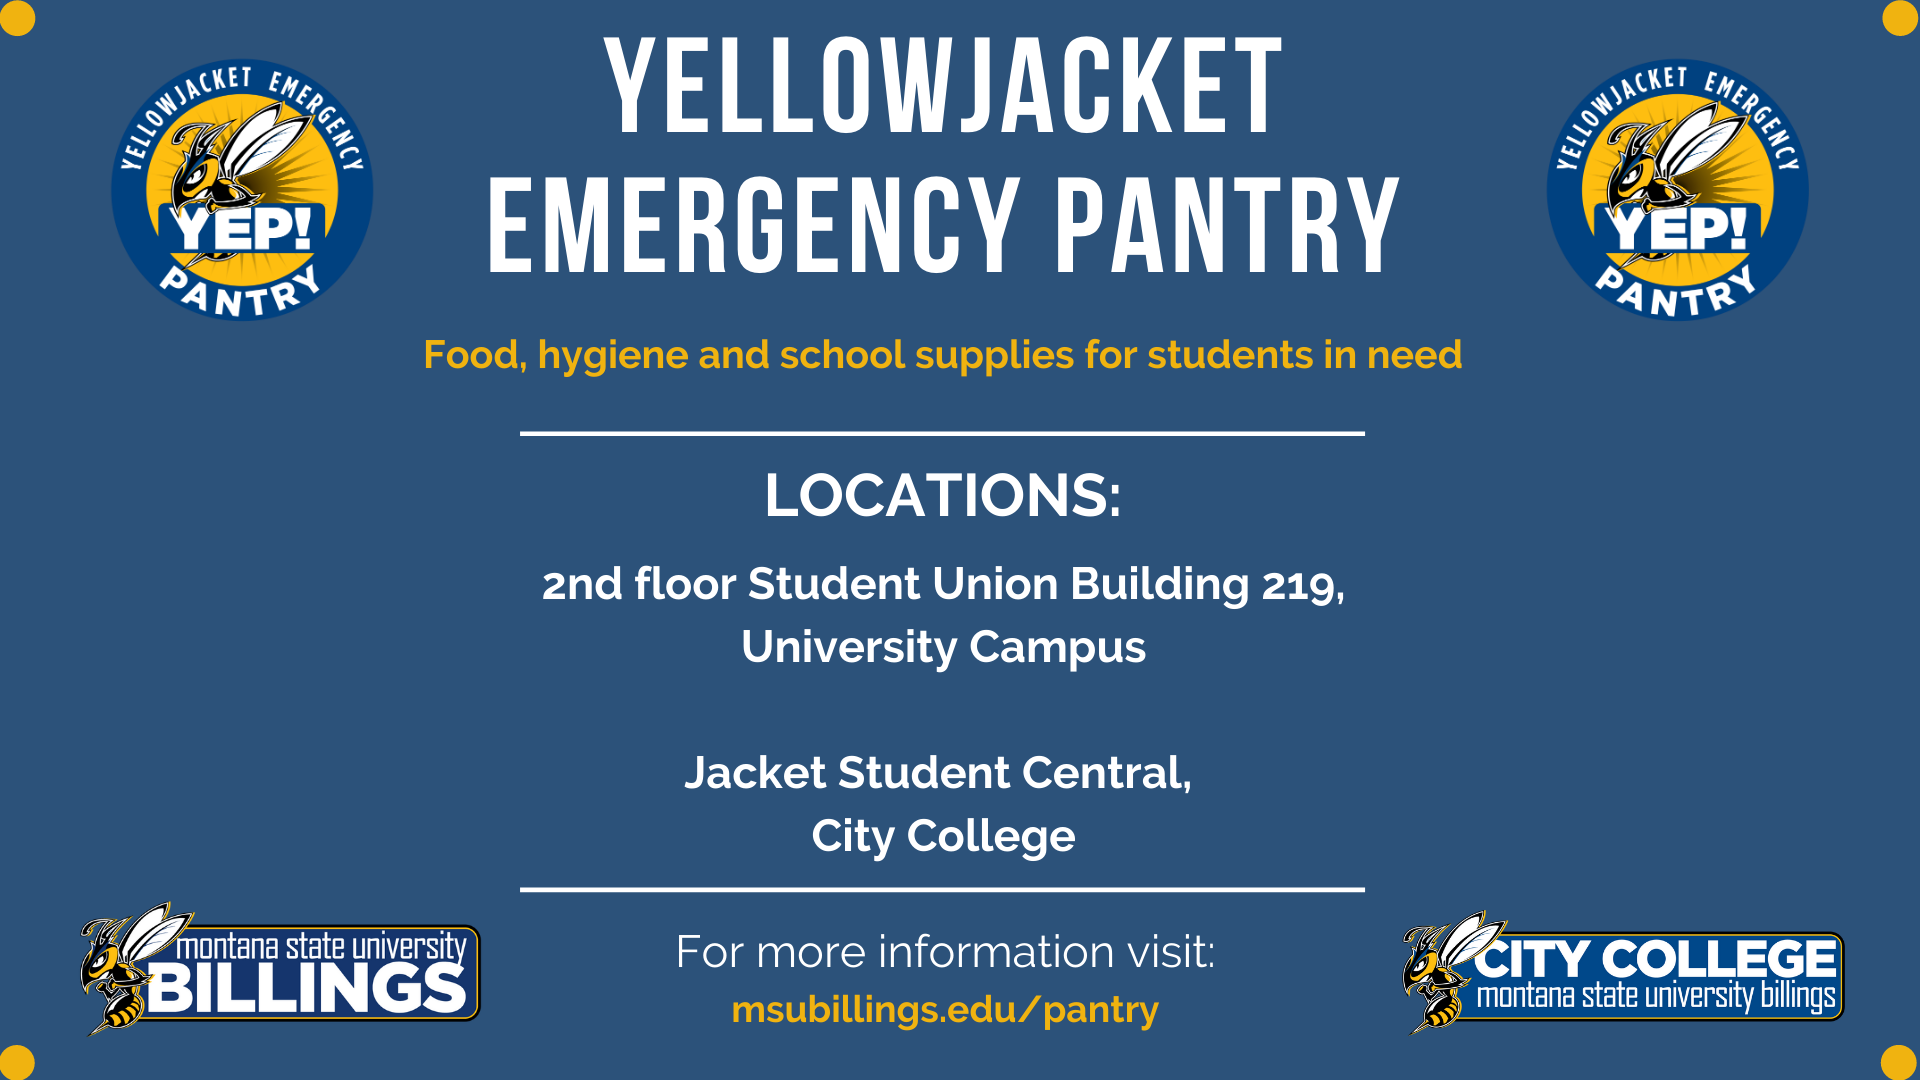 YELLOWJACKET EMERGENCY PANTRY OFFERING FOOD, HYGIENE AND SCHOOL SUPPLIES TO STUDENTS IN NEED LOCATIONS AVAILABLE AT UNIVERSITY CAMPUS SUB 219 AND CITY COLLEGE TECH COMMONS